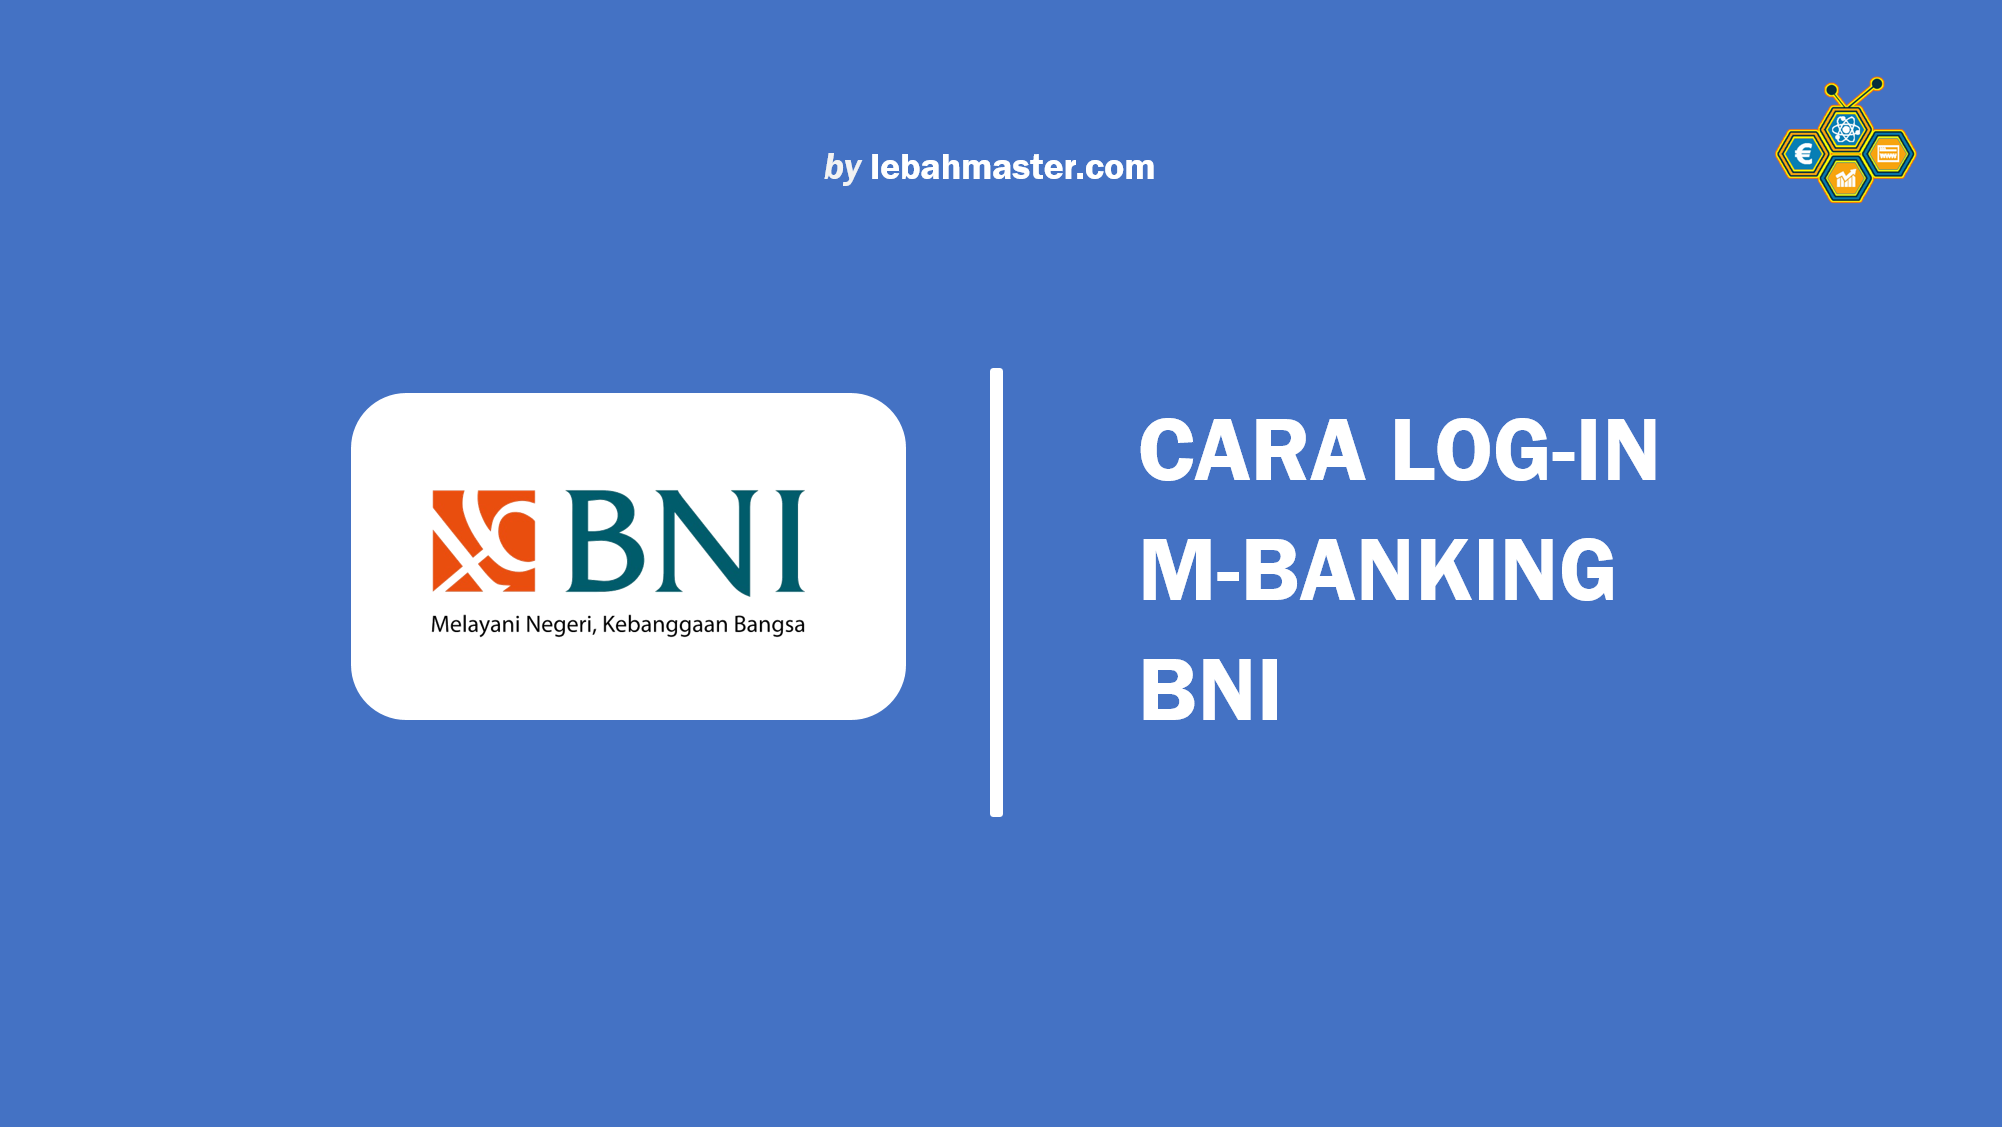 Cara Log-in m-Banking BNI